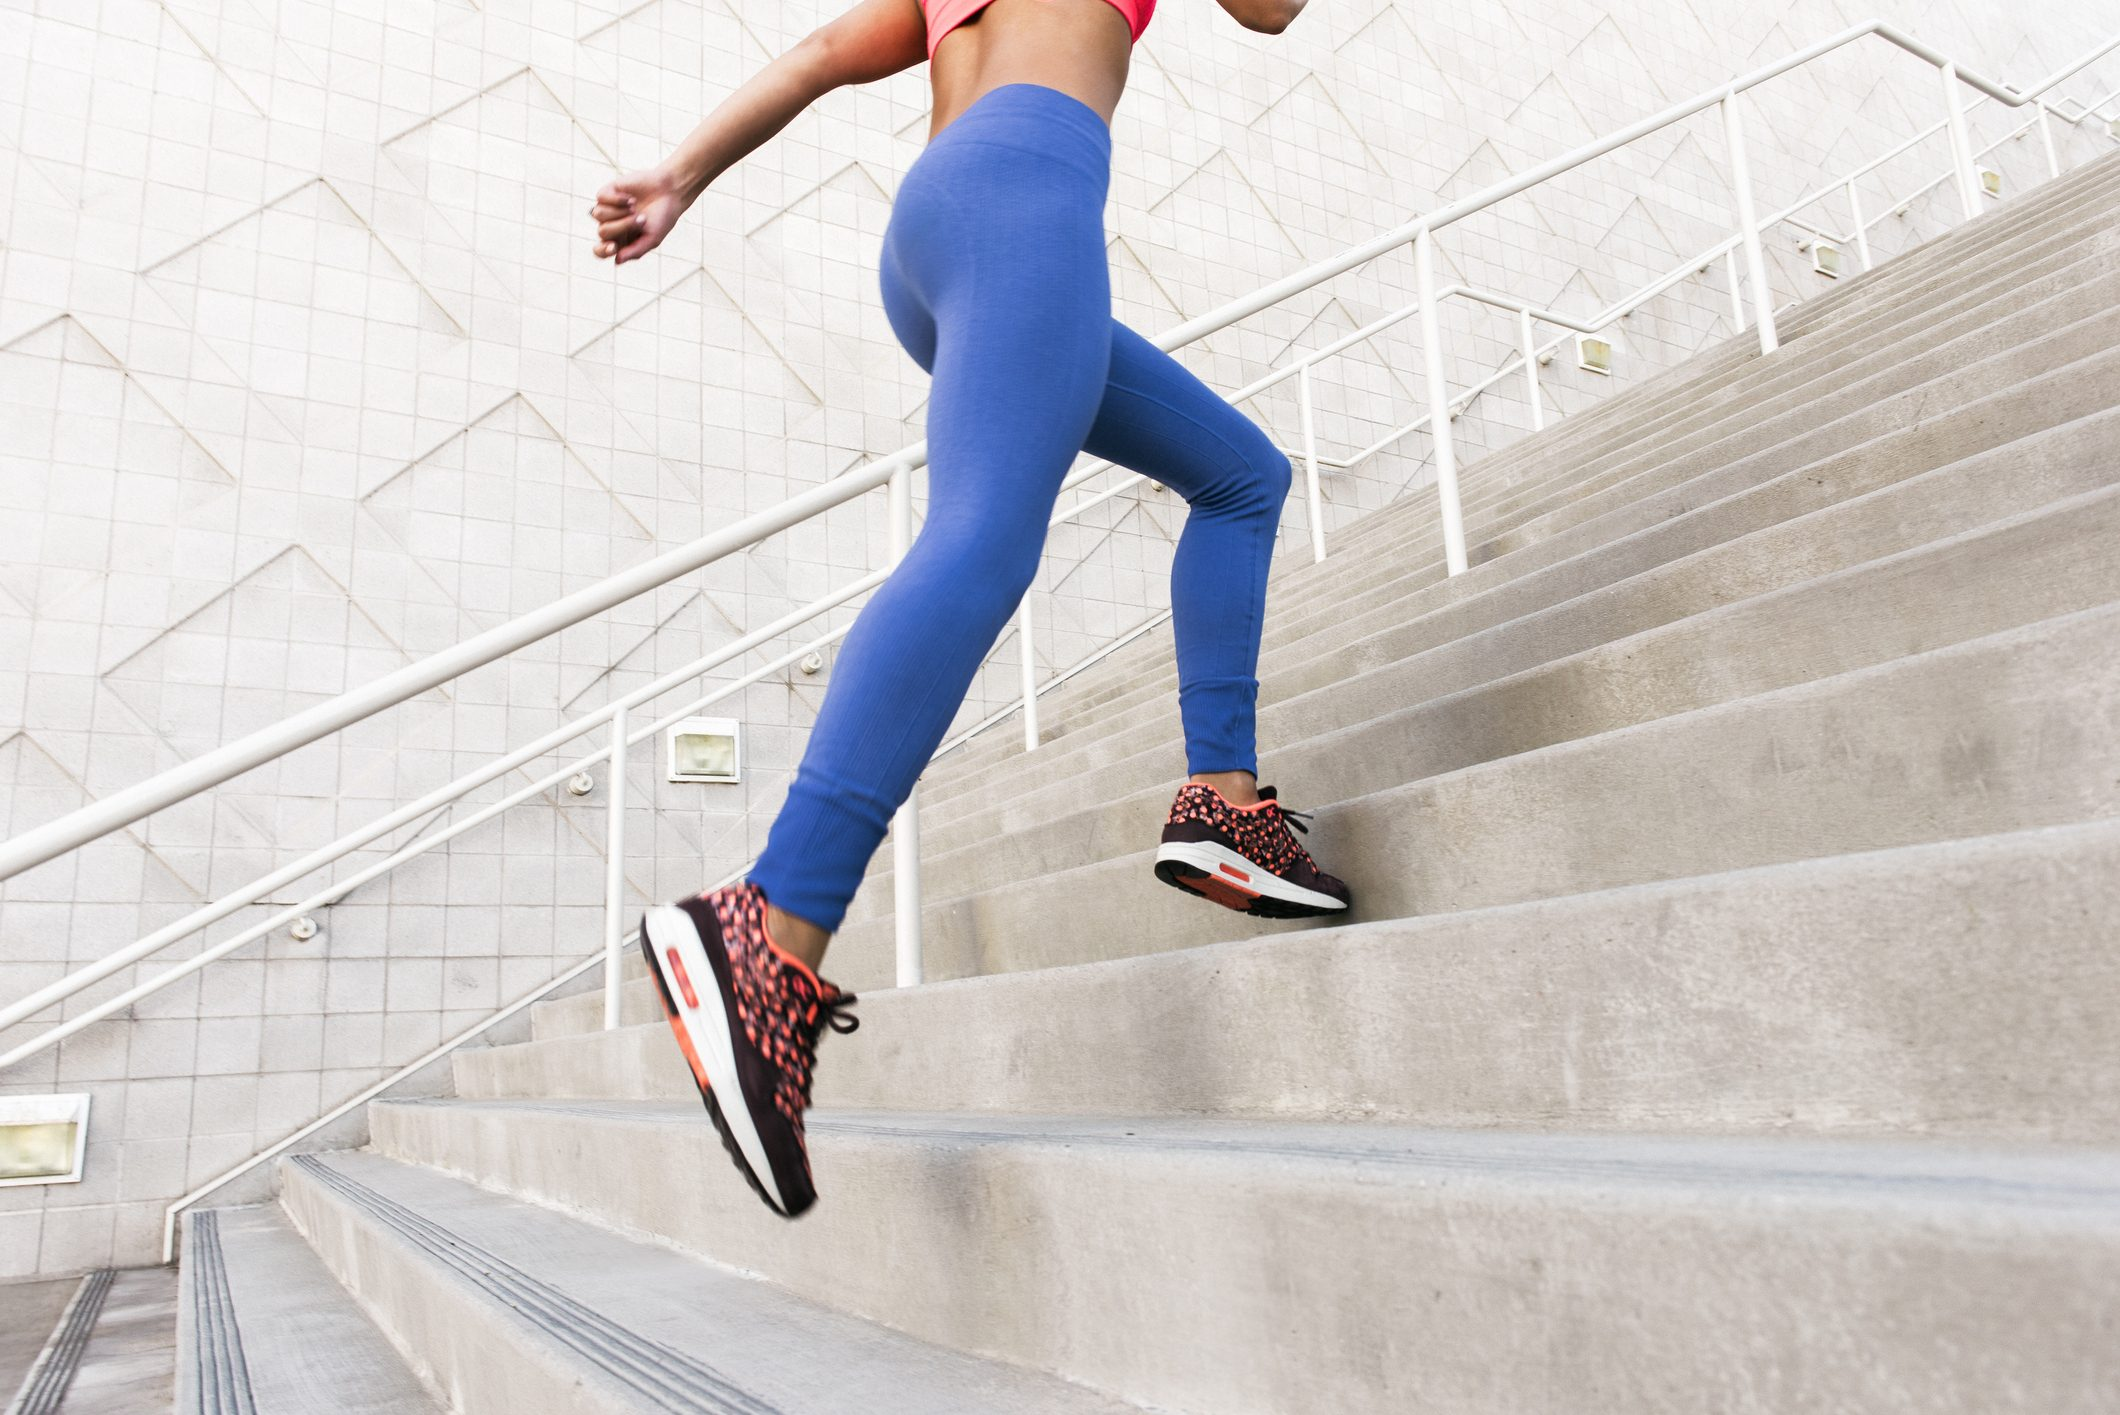 low angle shot of woman exercising on stairs wearing leggings and sneakers